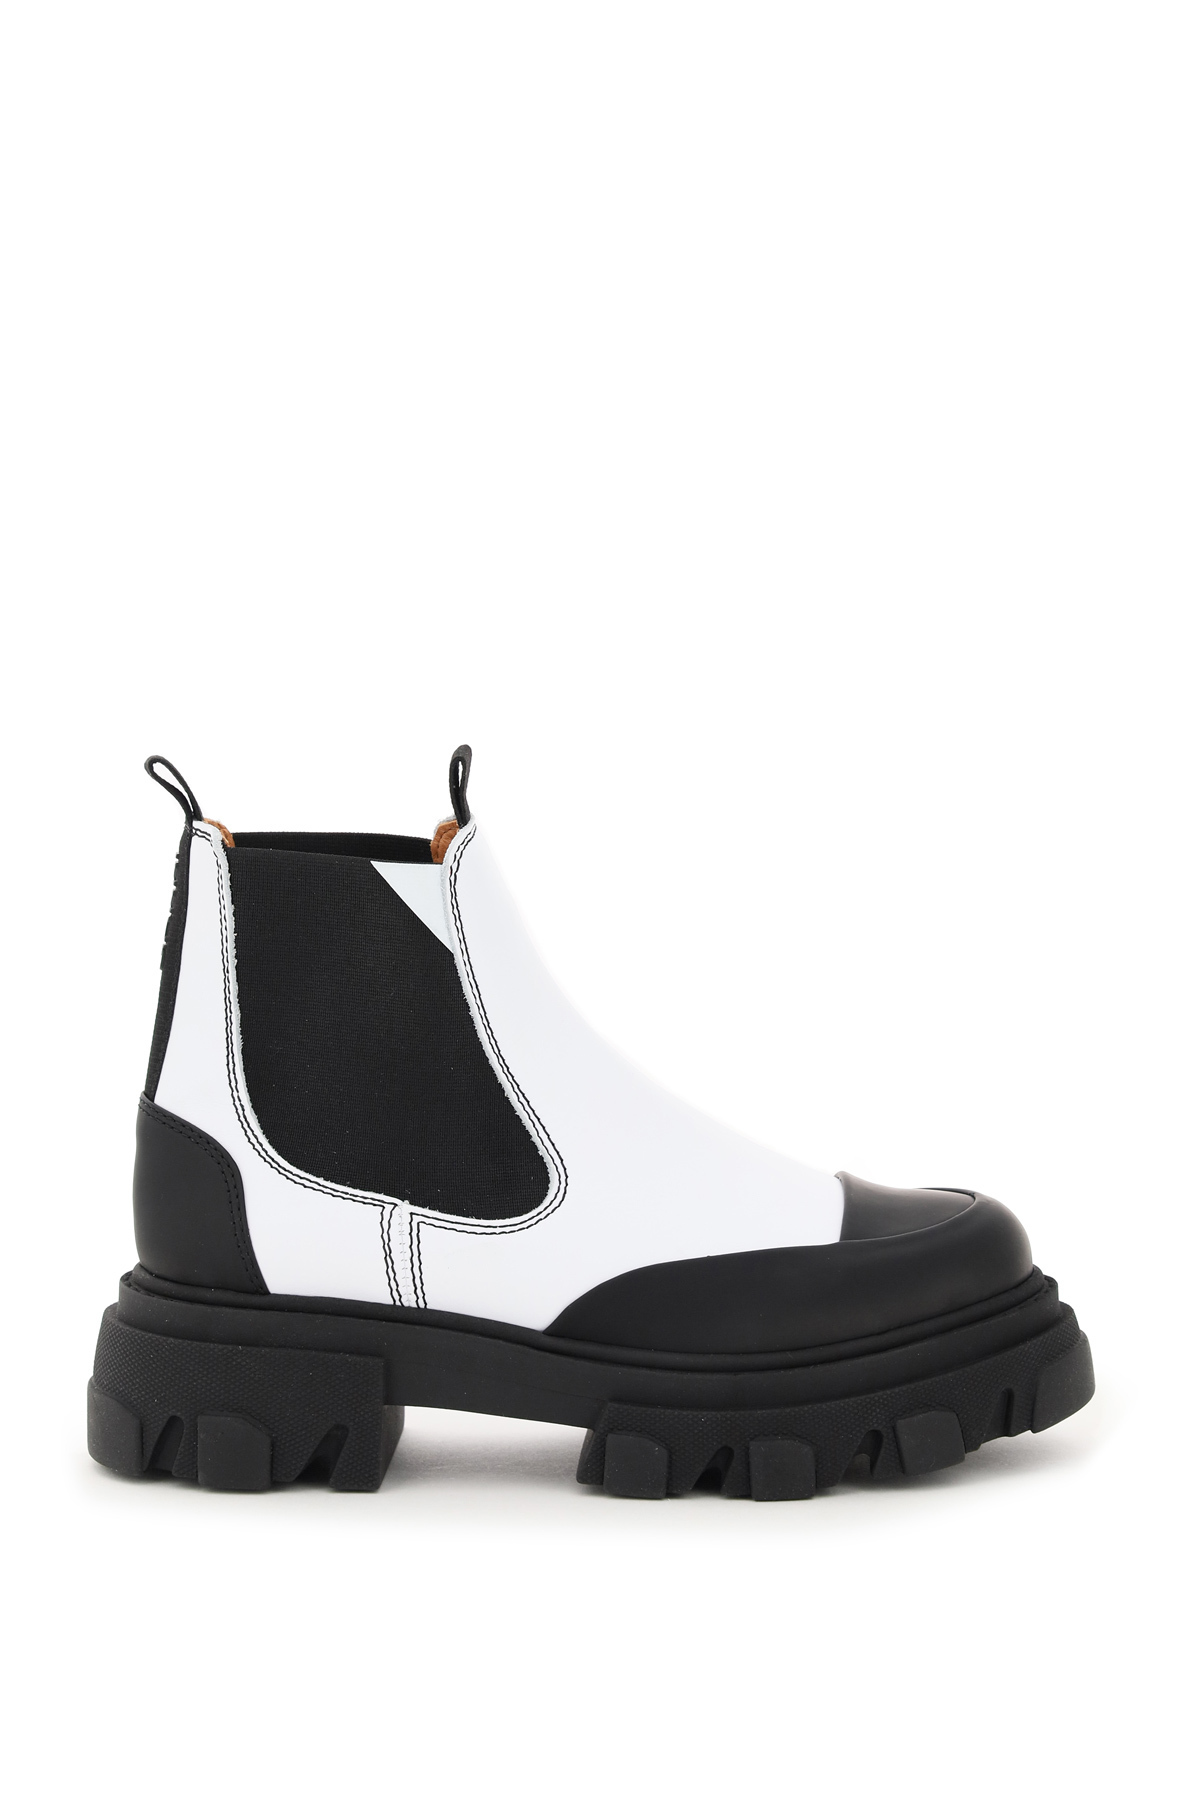 Ganni Leather Chelsea Boots 36 White, Black Leather